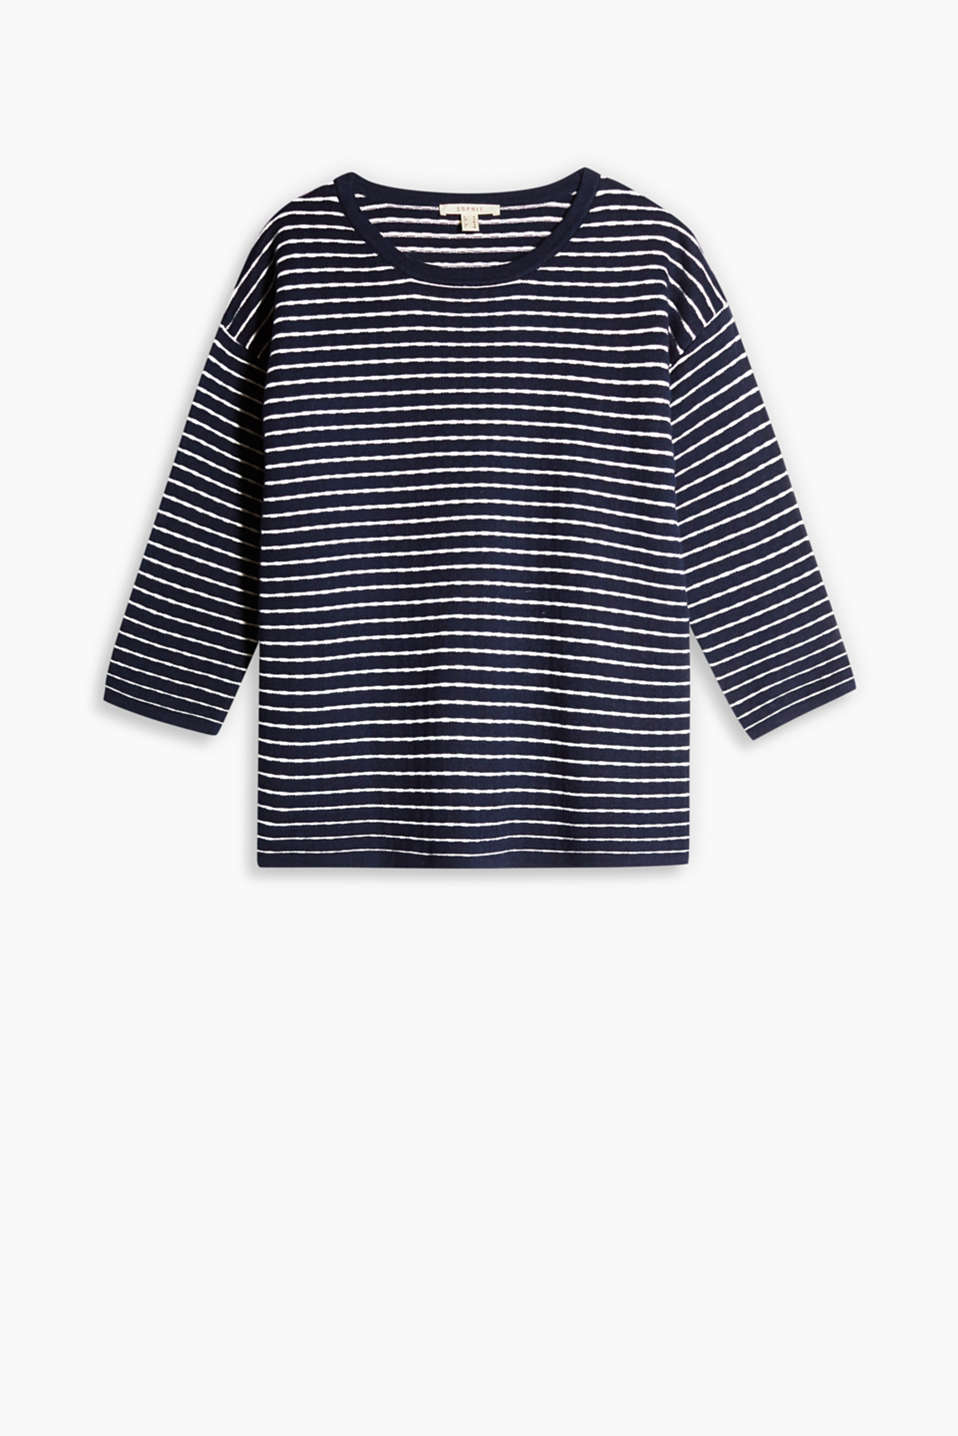 Boxy jumper made of compact knit yarn with textured stripes, 100% cotton